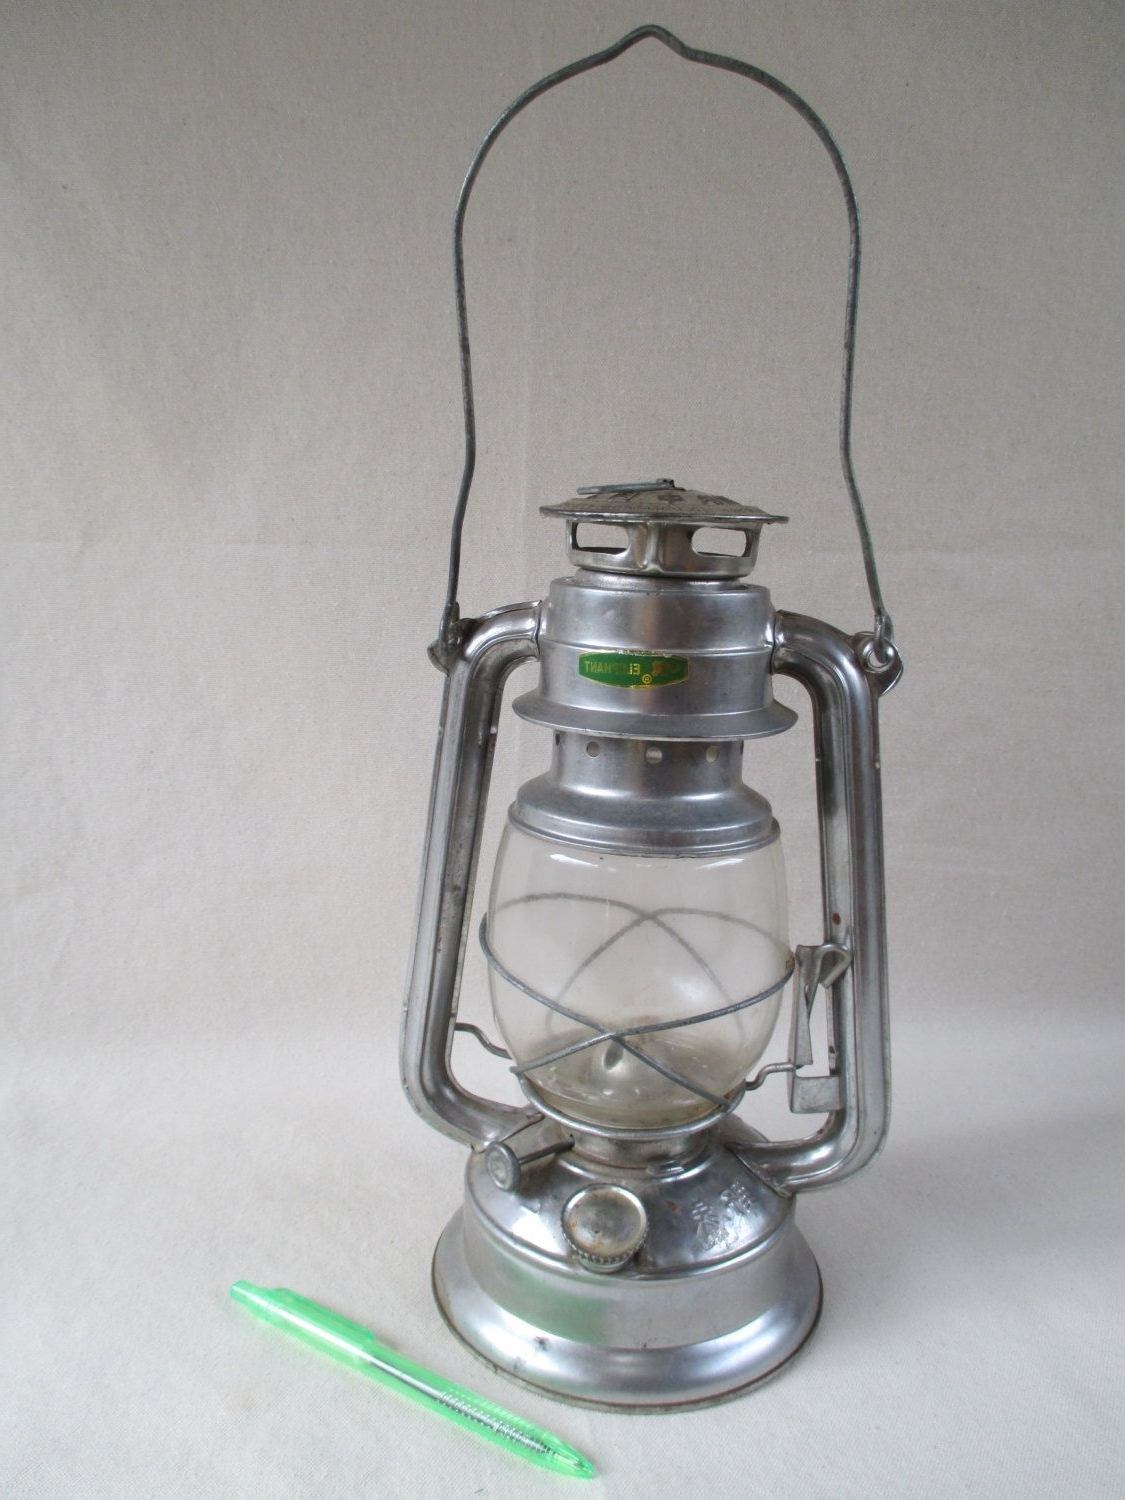 Decorative Outdoor Kerosene Lanterns Pertaining To Favorite Kerosene Lantern, Vintage Metal Silver, Unused, Elephant Brand, Made (View 5 of 20)